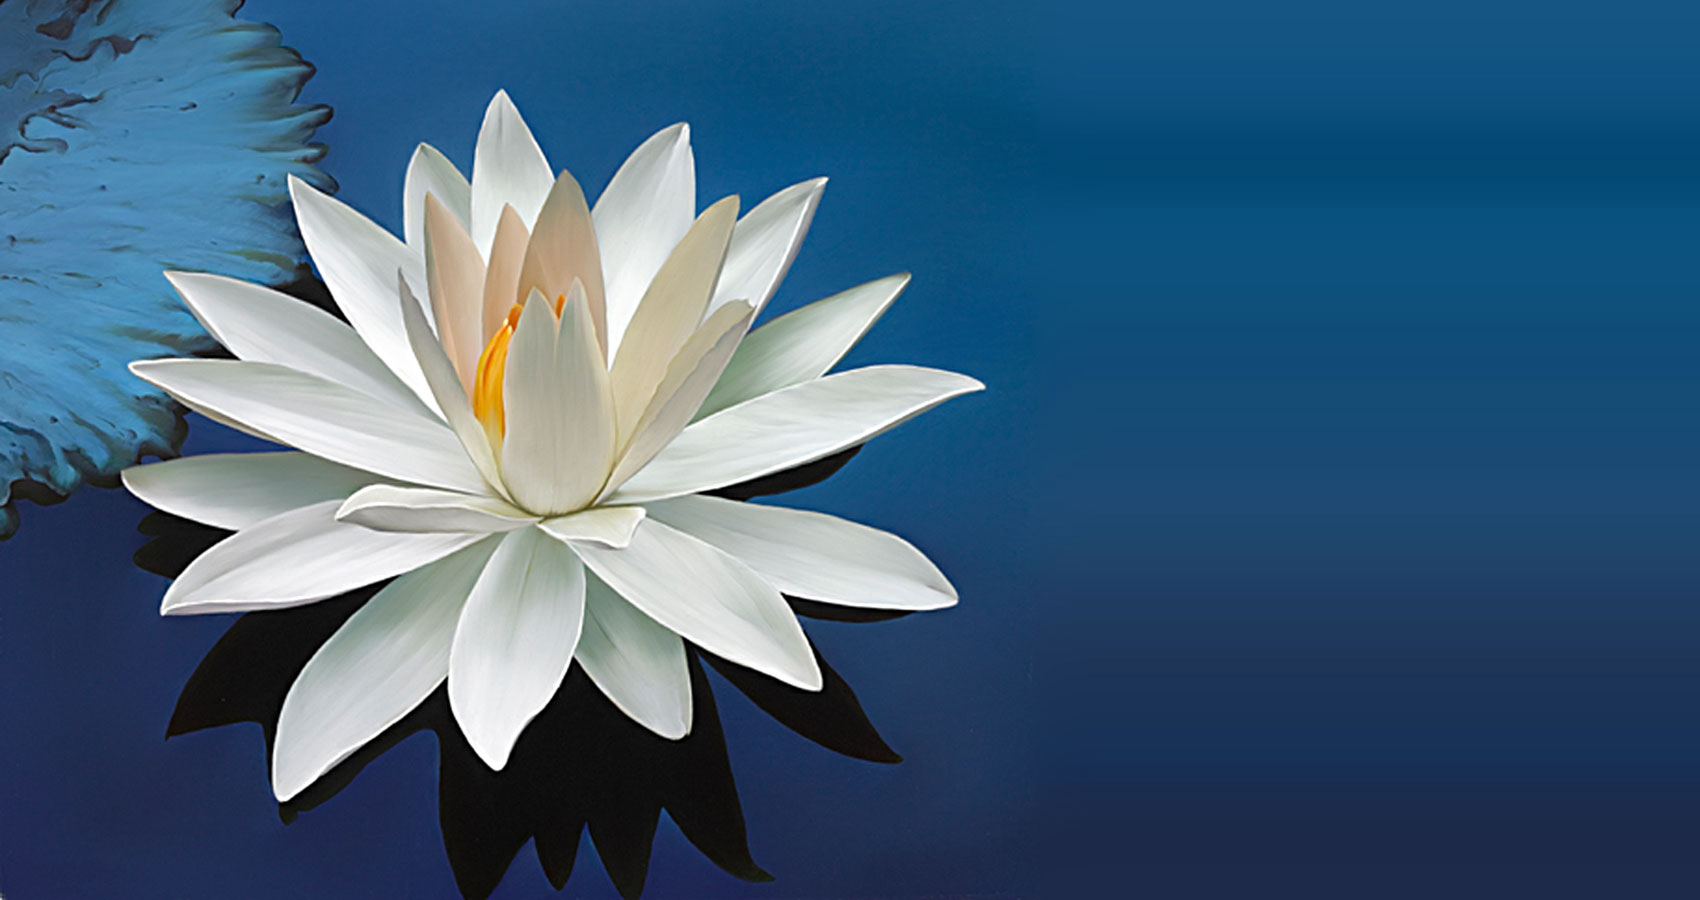 The Lotus-Flower at Spillwords.com